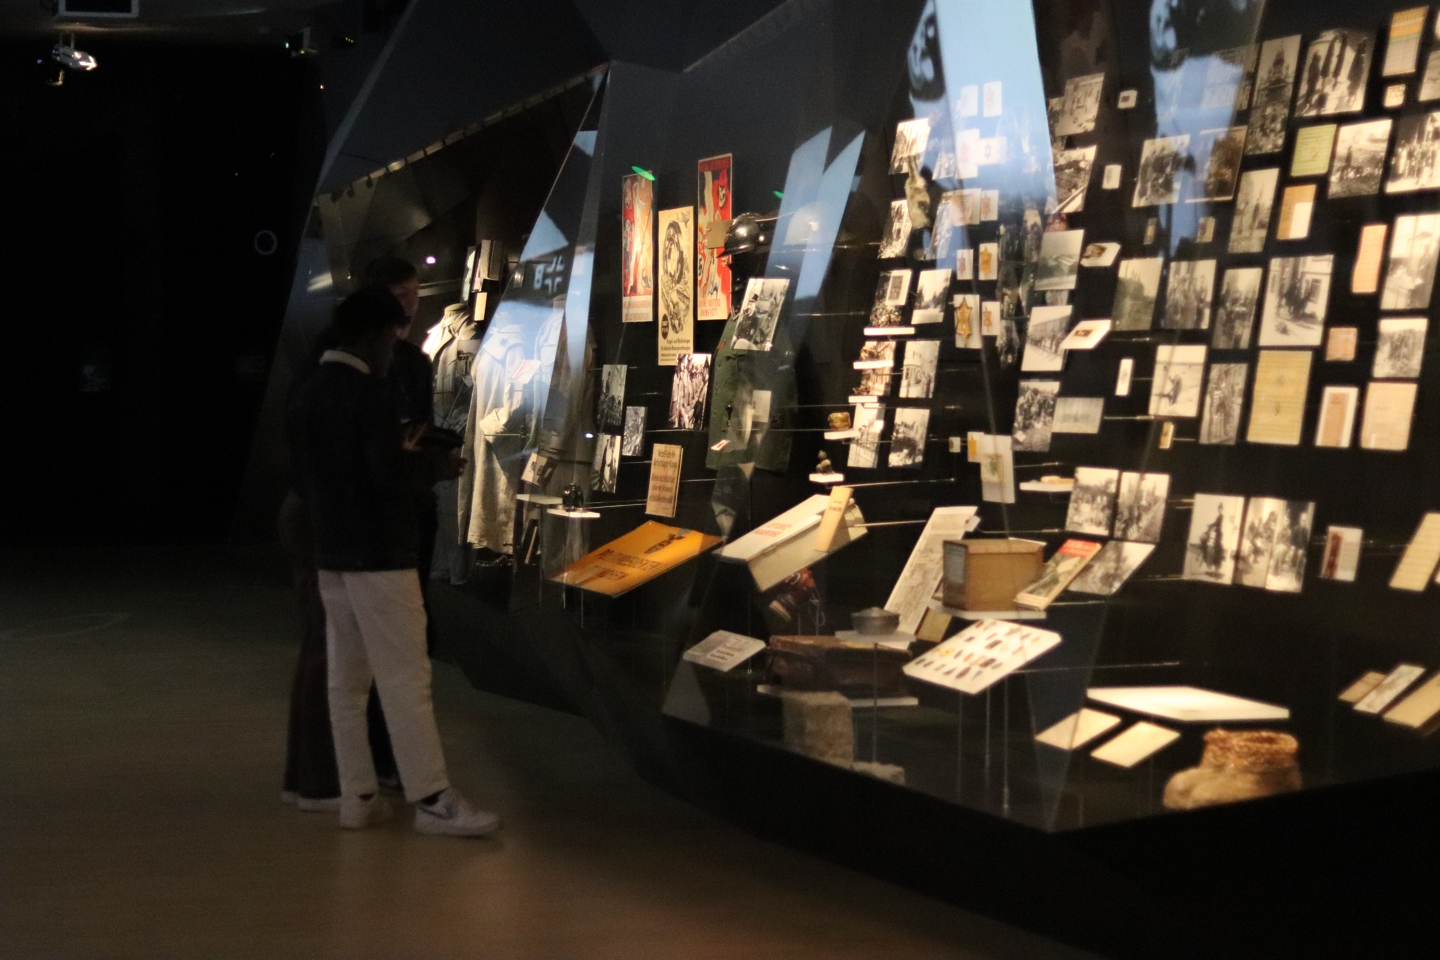 Part of the exhibition at a museum in Brussels. In the glass display are old pictures and posters.